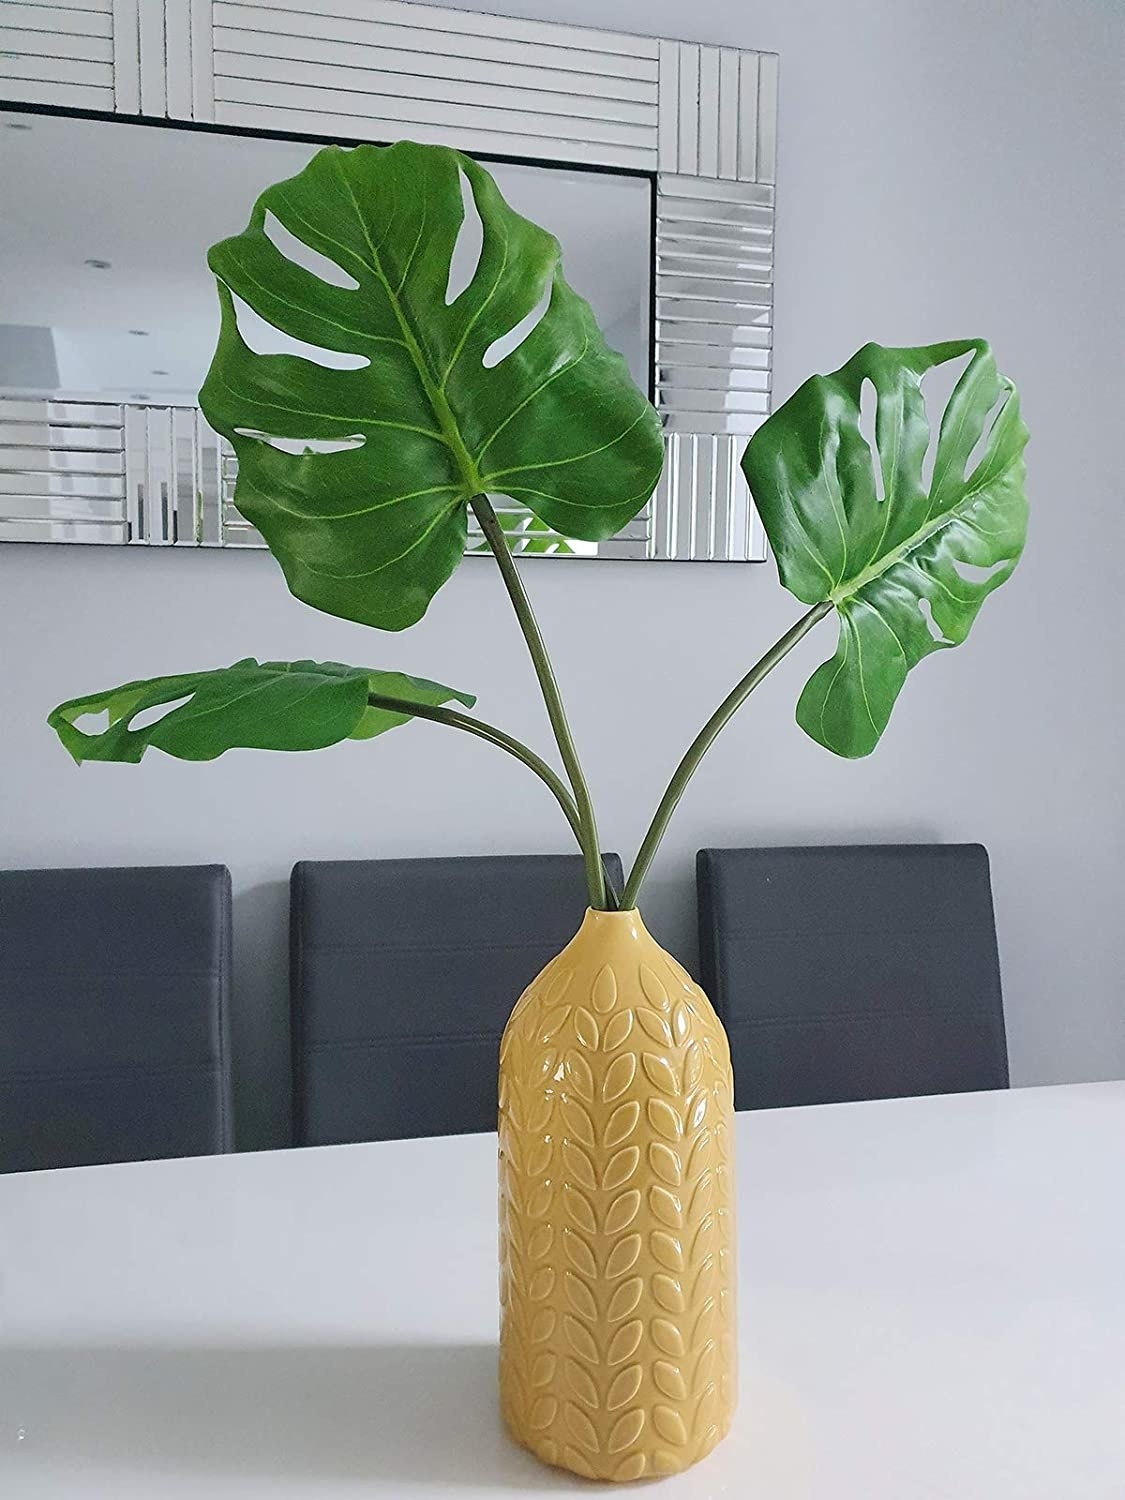 the three fronds in a vase